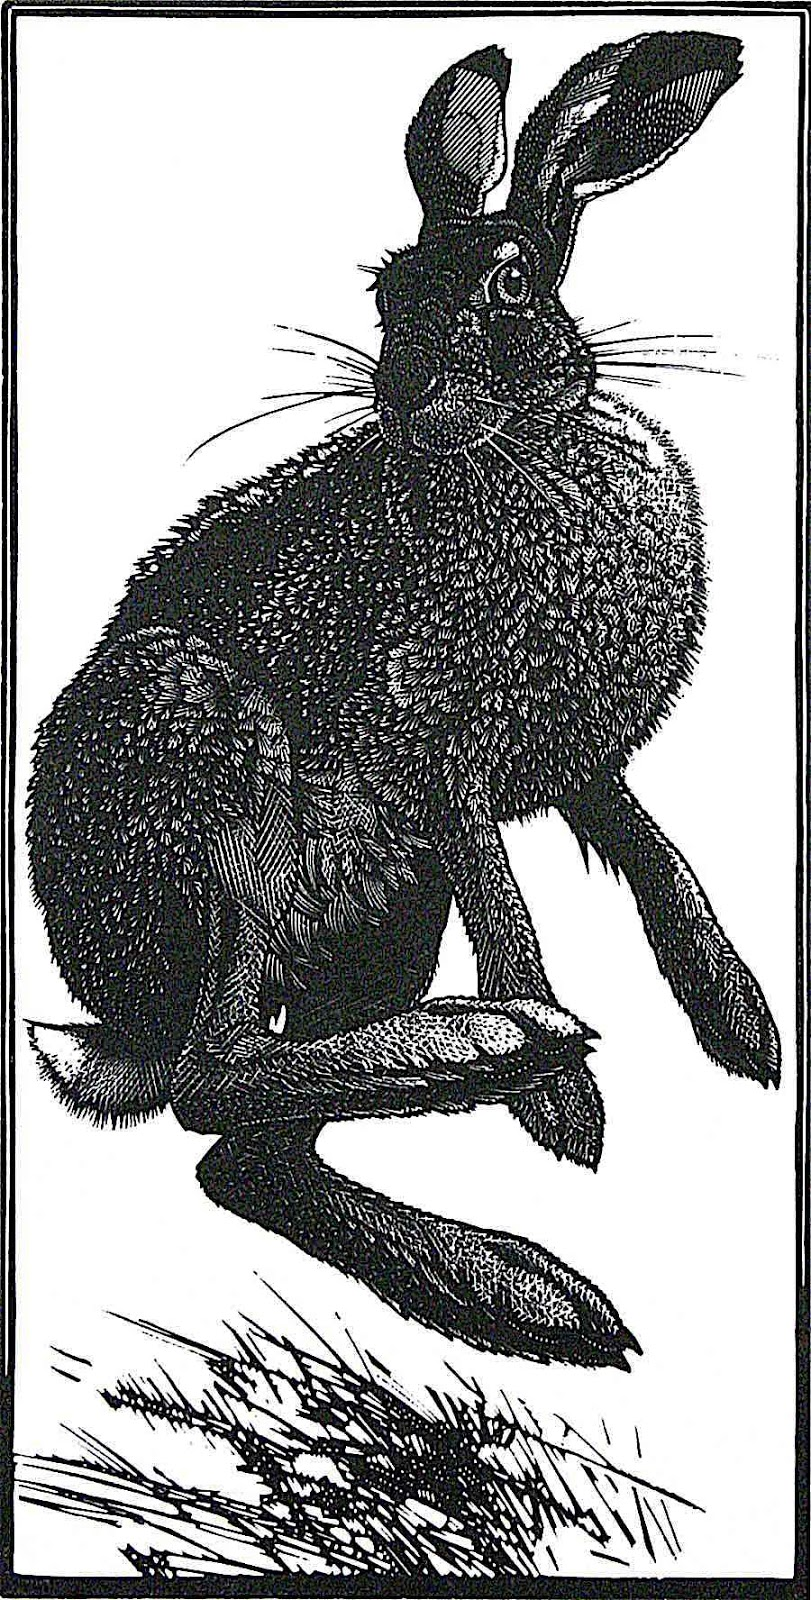 a wild hare by Colin See Paynton ... hares can attack if provoked